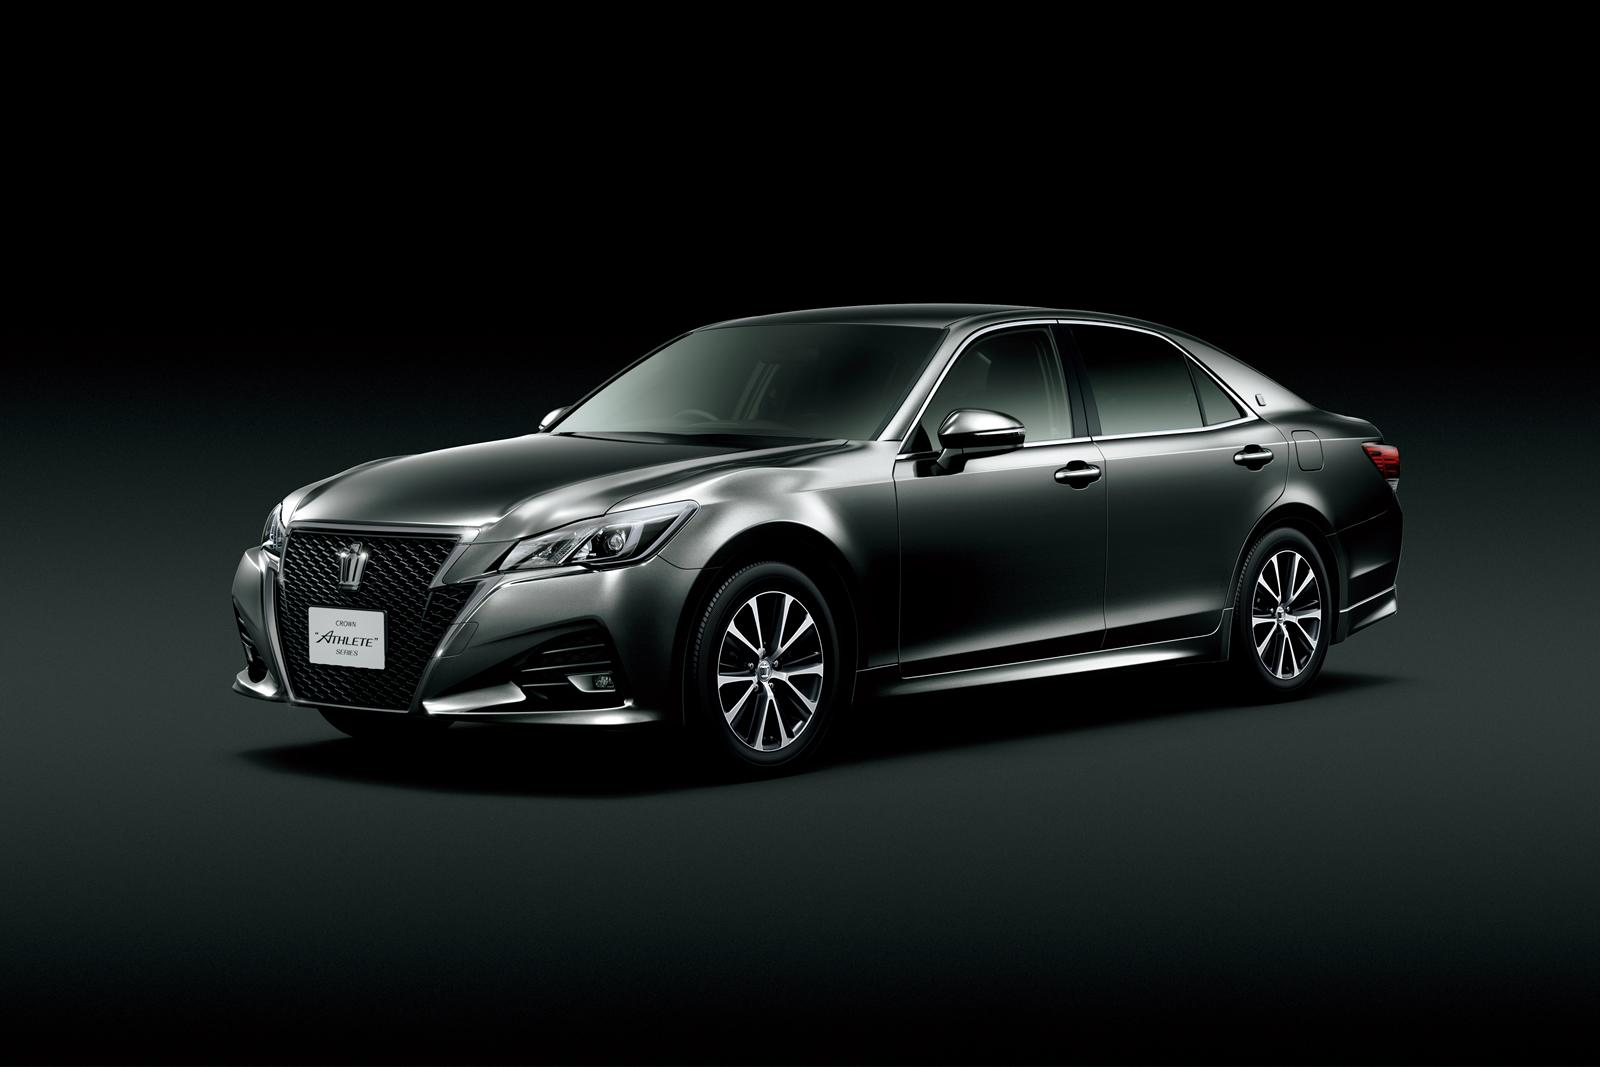 2018 Nissan 370z Nismo >> 2014 Toyota Crown Athlete Is a Cool Sedan You Can't Have ...